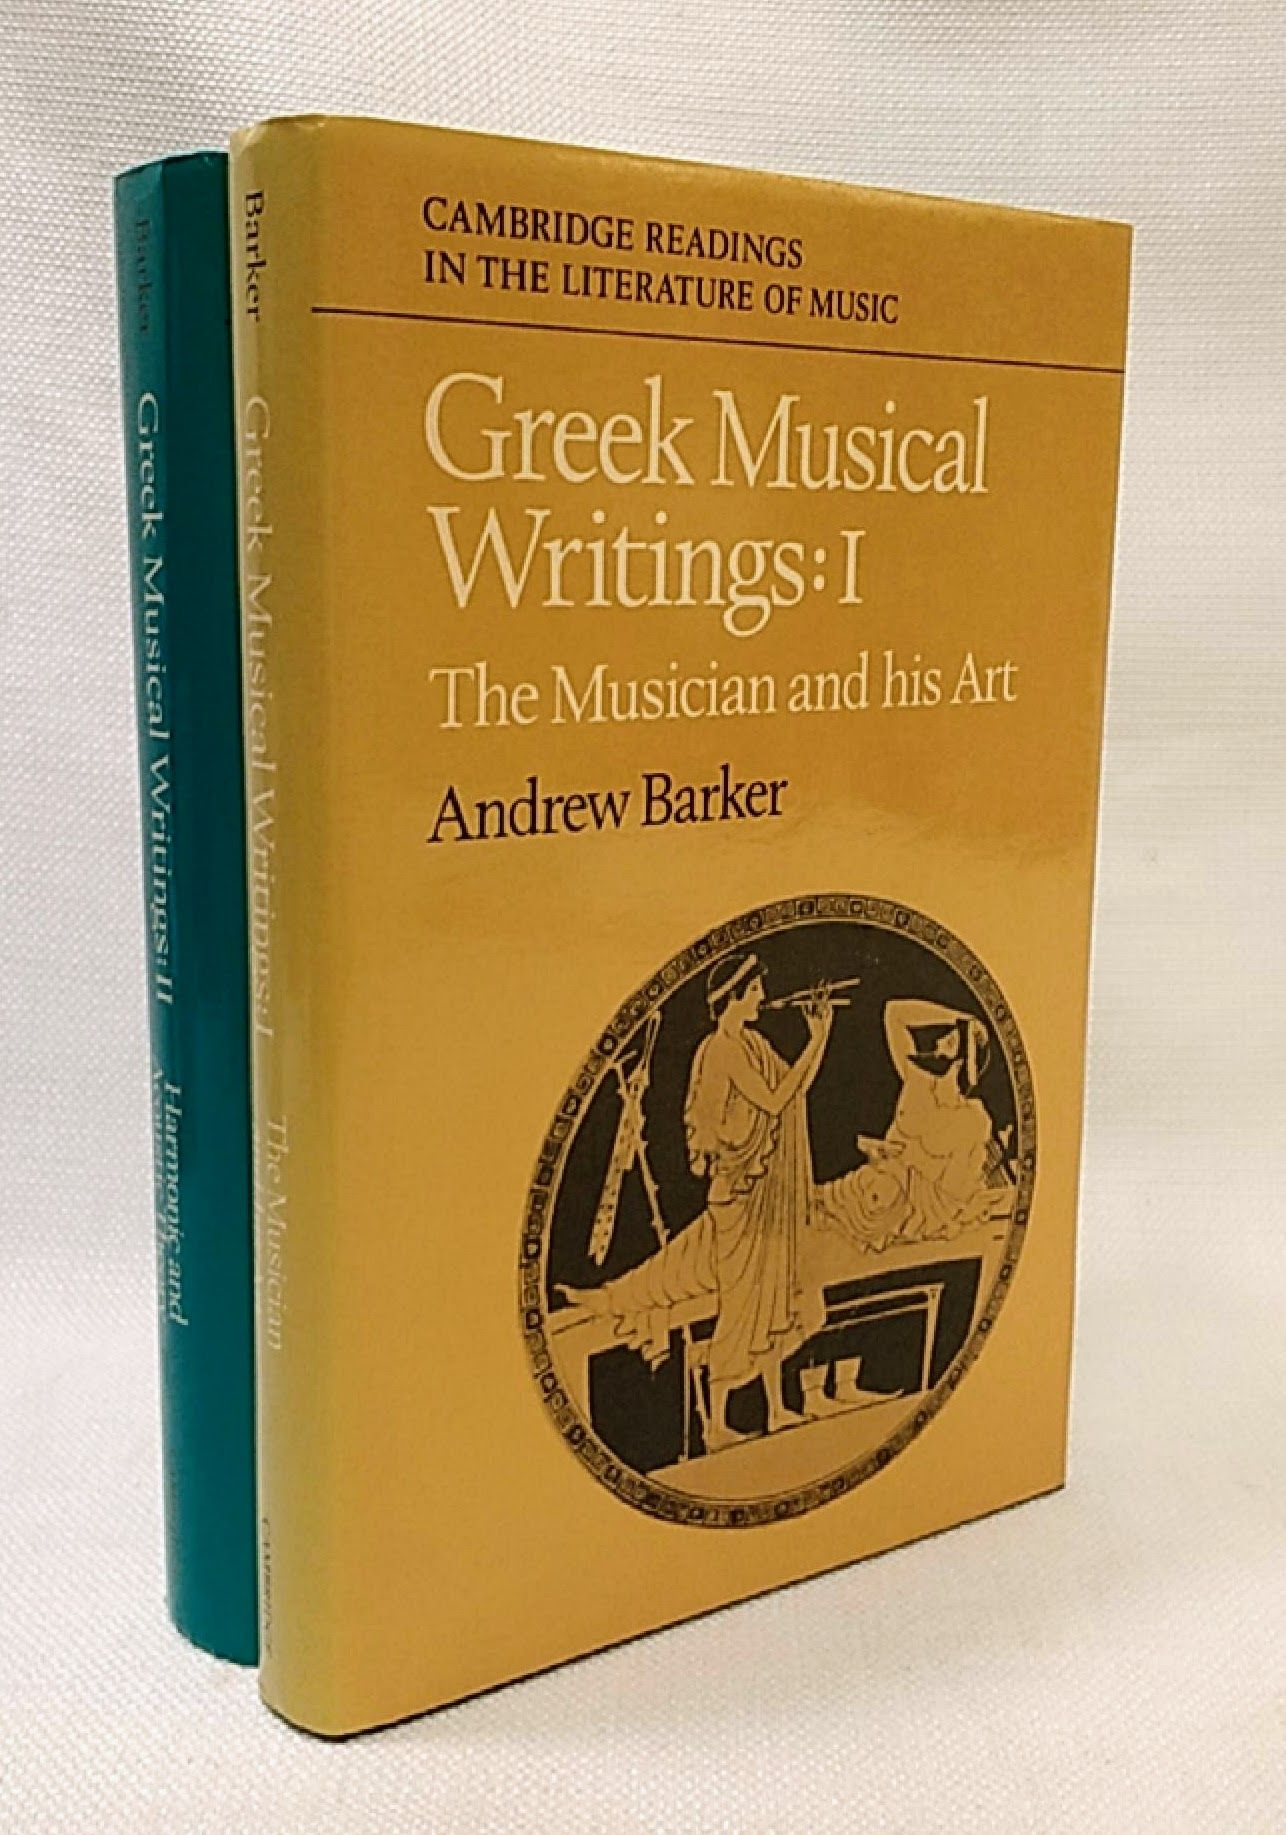 Greek Musical Writings: Volume 1, The Musician and his Art (Cambridge Readings in the Literature of Music) (v. 1) / Greek Musical Writings: Volume 2, Harmonic and Acoustic Theory (Cambridge Readings in the Literature of Music) (v. 2), Barker, Andrew [Editor]